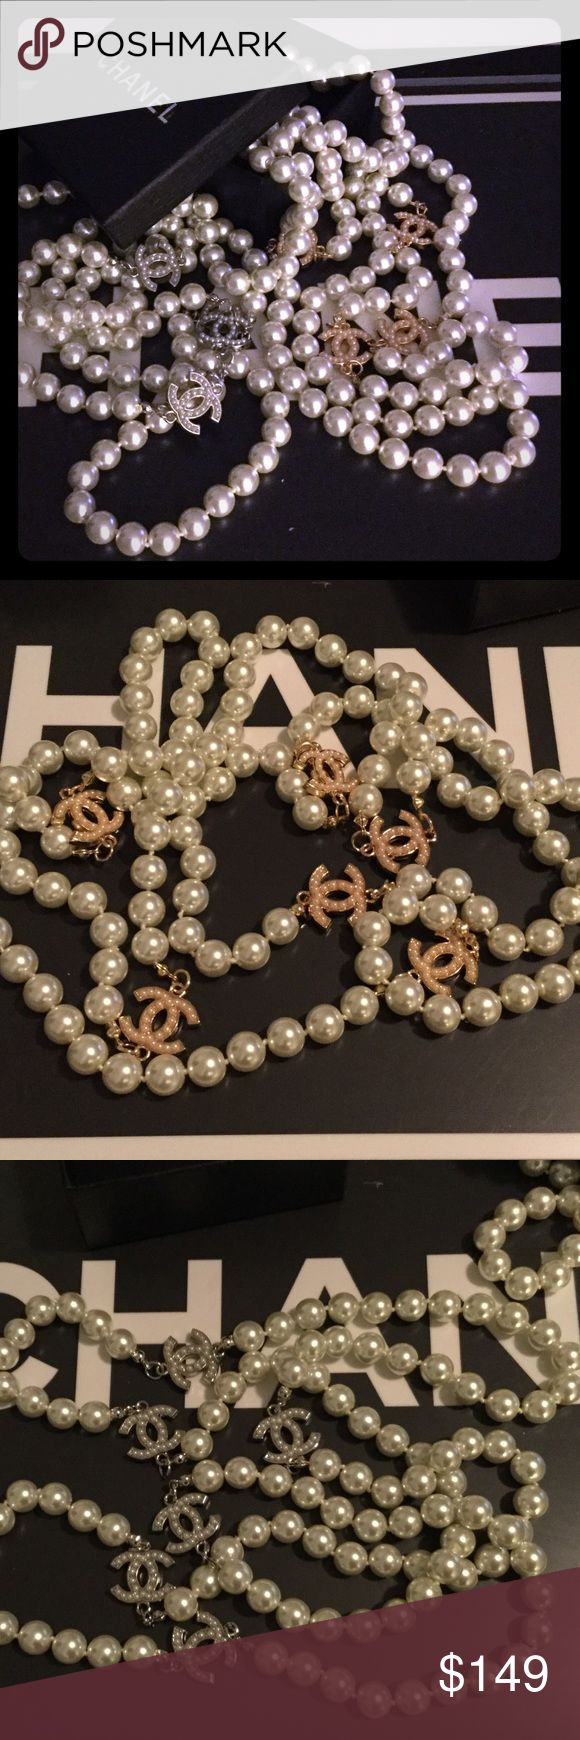 """Silver or Gold CC Pearl Necklace Measures about 31"""" inches. Gorgeous necklace, only a few available. Priced accordingly. Thanks, and PRICE FIRM. Comes with box. CHANEL Makeup Brushes & Tools"""